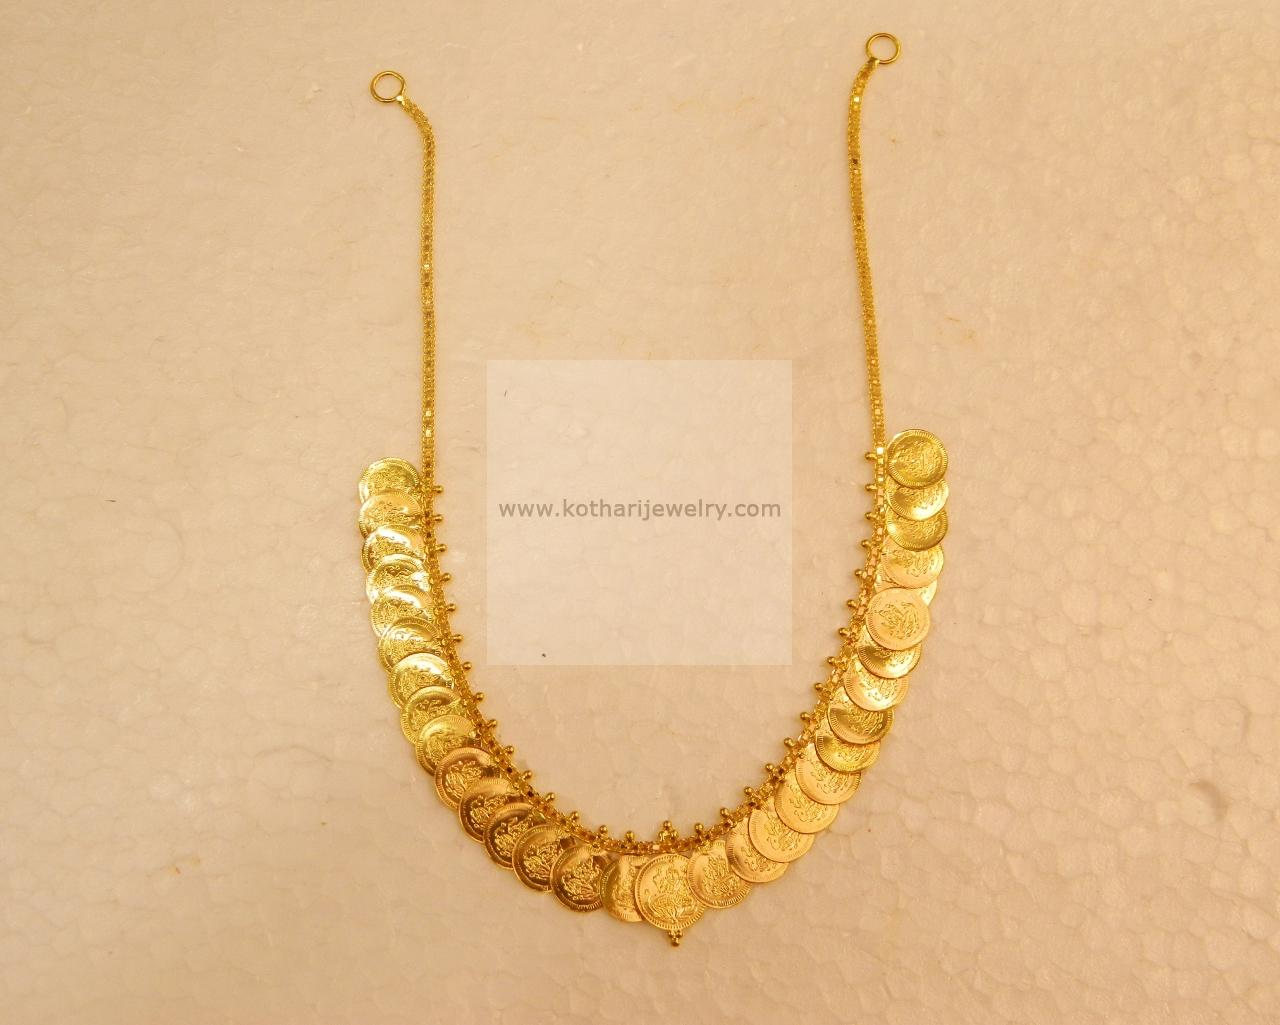 distributors surat necklace chain jewelry chains and gold retailers wholesalers weight in light necklaces manufacturers shop